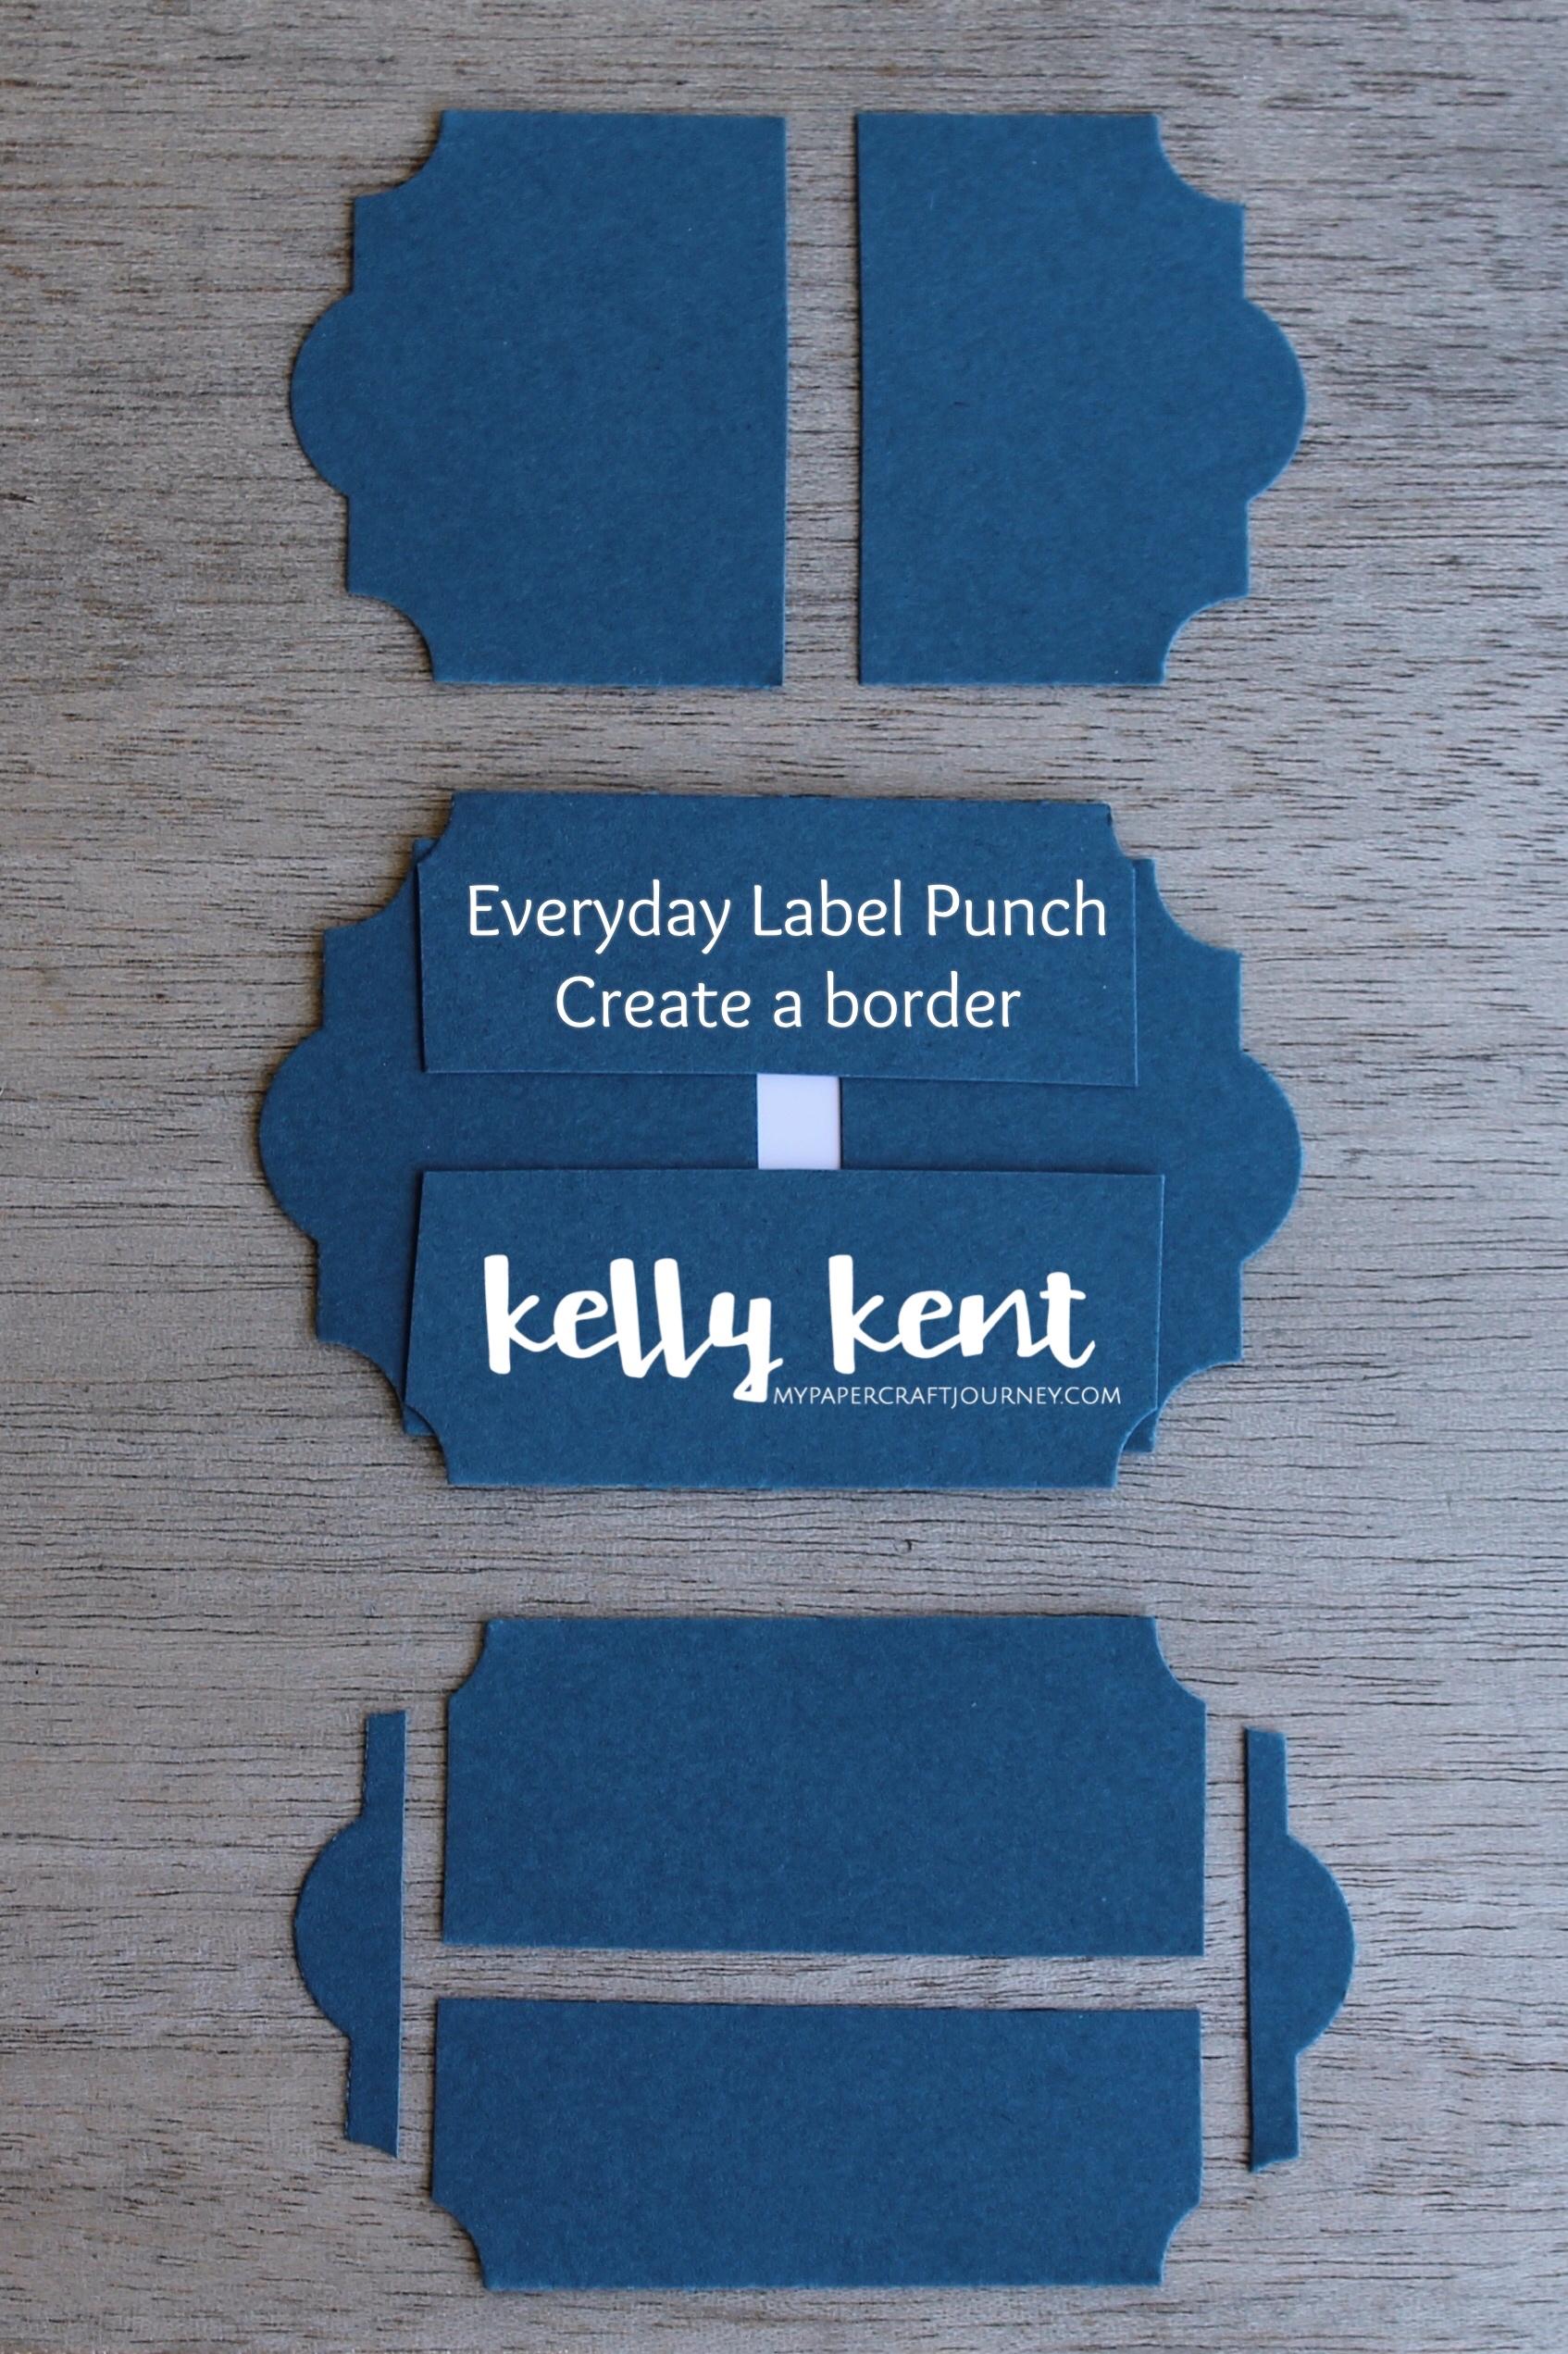 Everyday Label Punch - Adding a Border   kelly kent